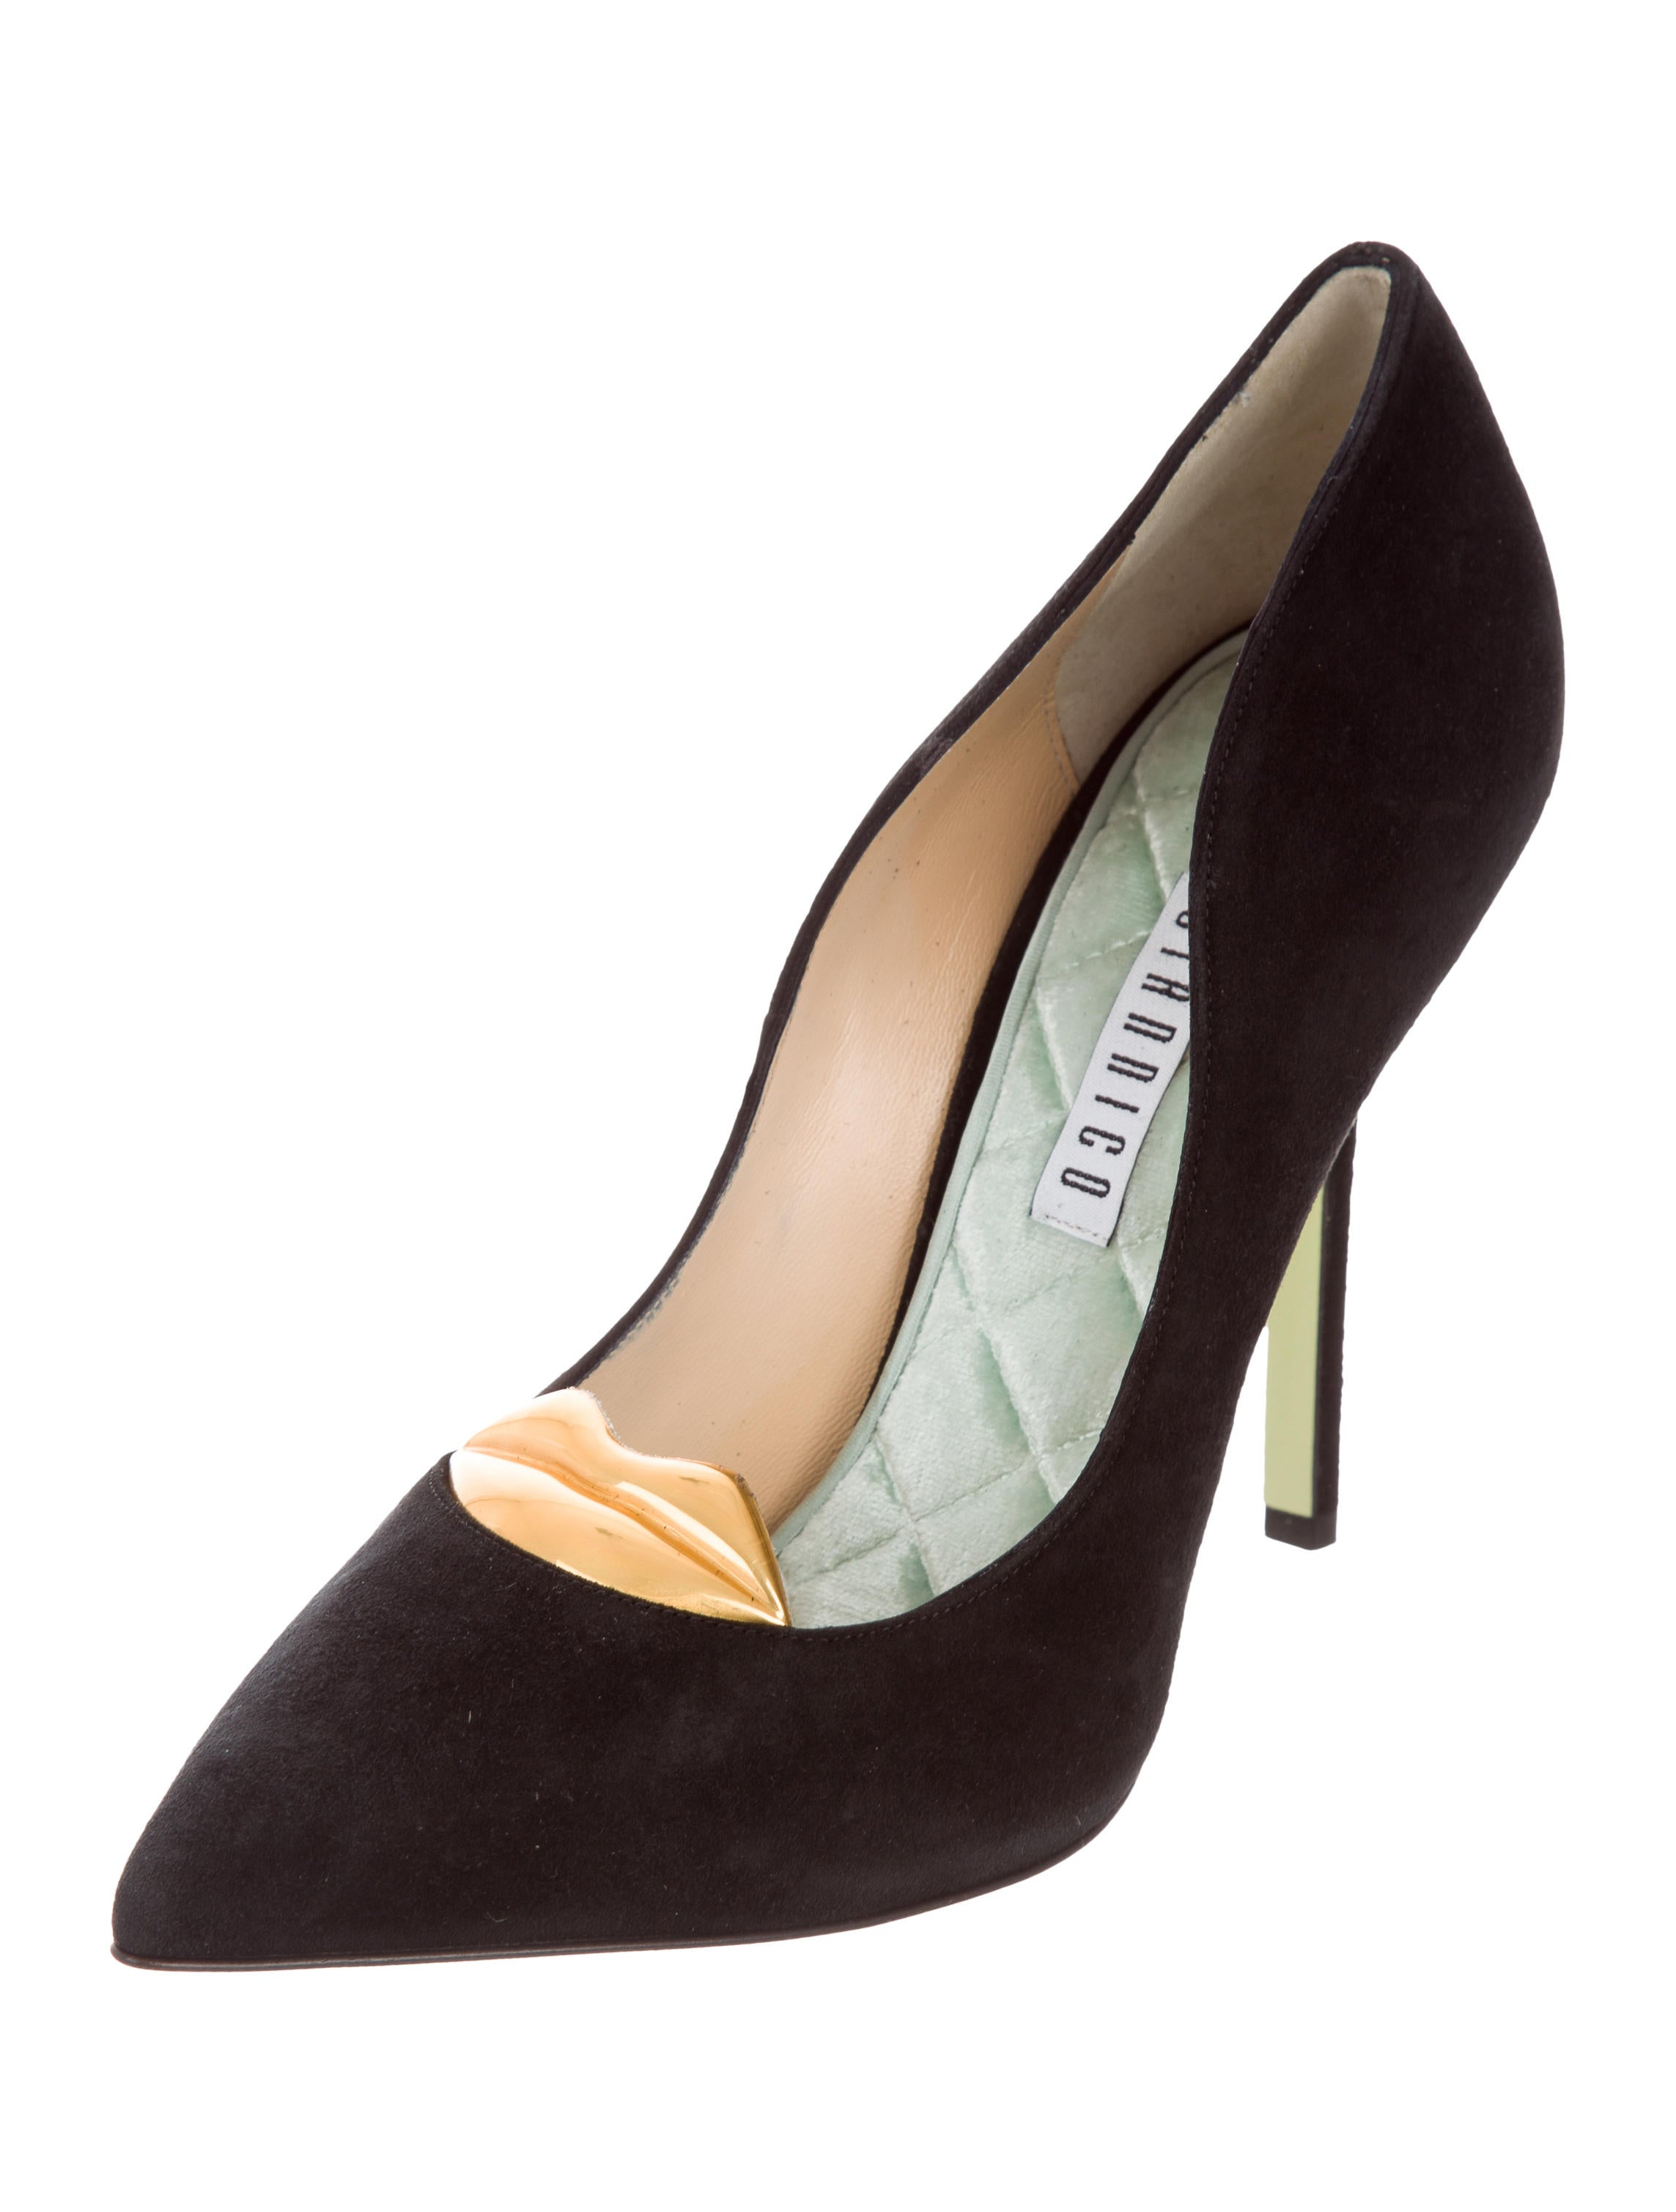 Giannico Superlola Suede Pumps w/ Tags clearance official site free shipping newest great deals cheap price sale latest collections discount low price MA8rja